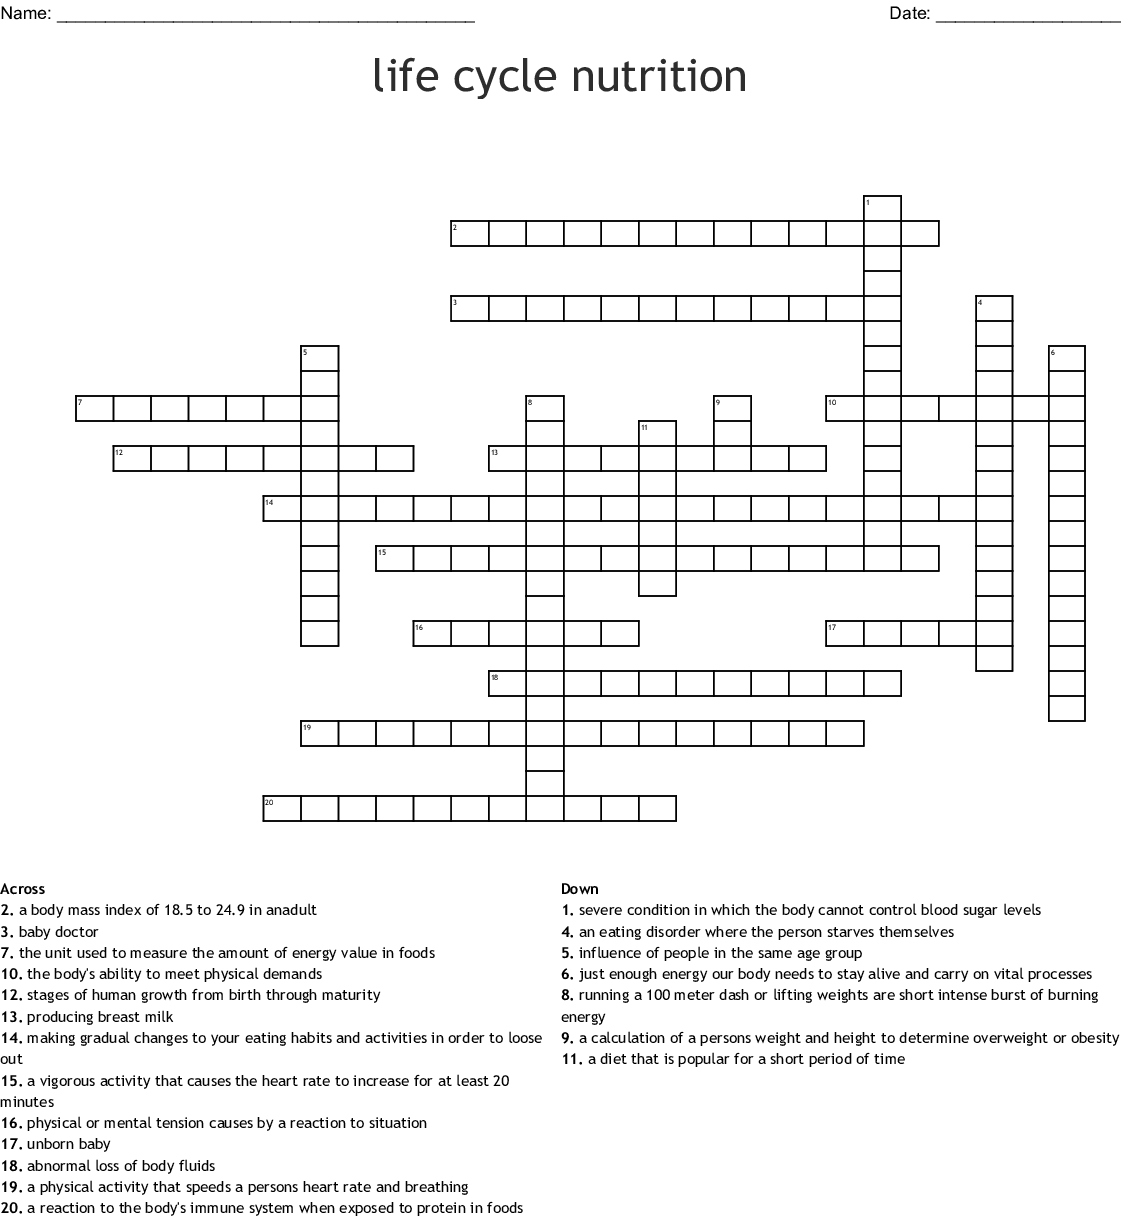 Life Cycle Nutrition Crossword